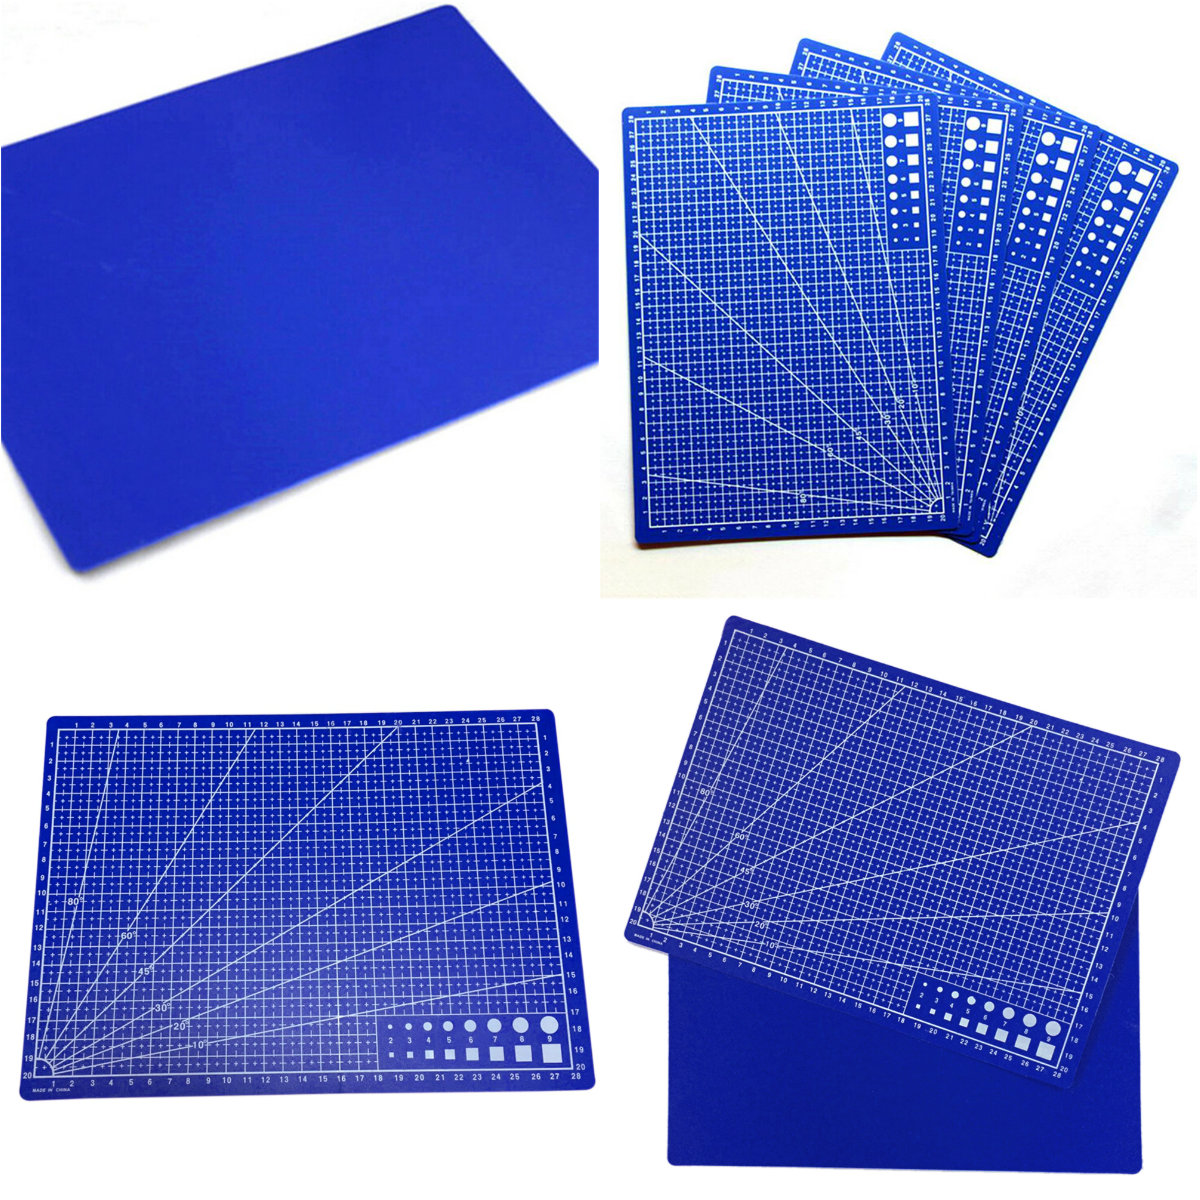 Cutting Mats A4 Grid Double-sided Cutting Plate Design Engraving Model Plate Mediated Knife Scale Plate Cut Cardboard 30*22cm